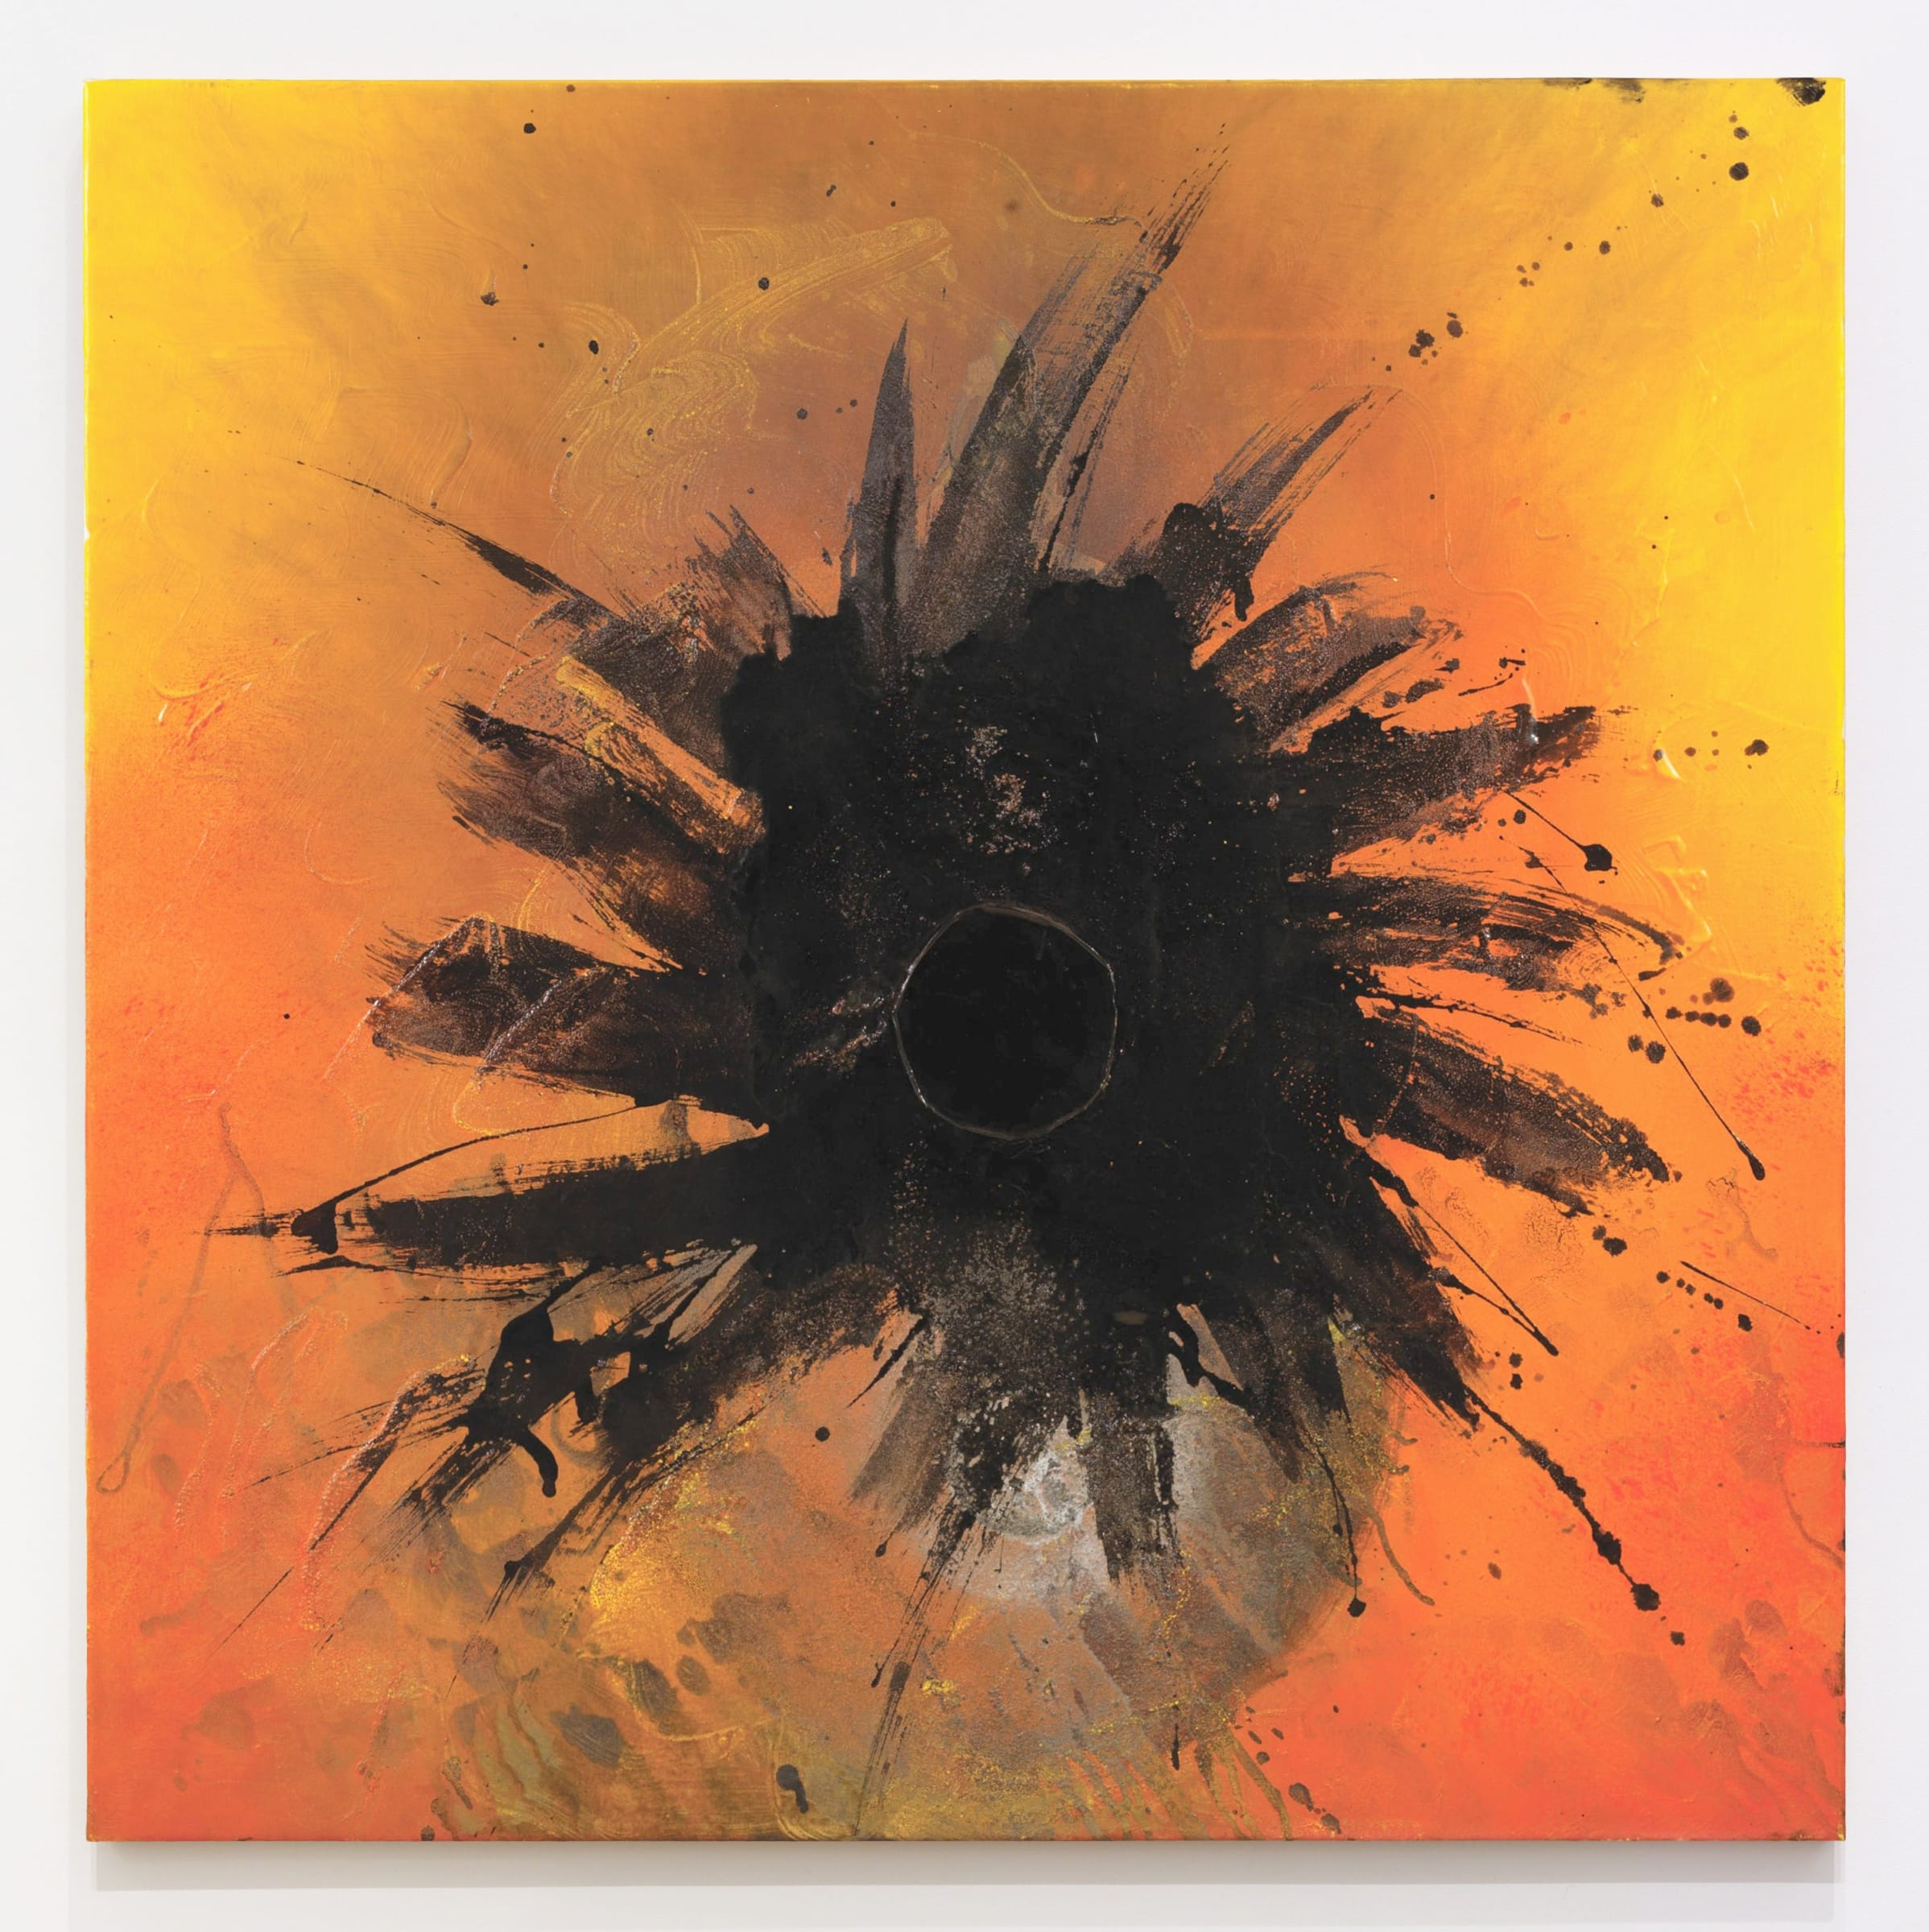 "<span class=""link fancybox-details-link""><a href=""/artists/47-otto-piene/works/9688-otto-piene-brush-star-1986-7/"">View Detail Page</a></span><div class=""artist""><span class=""artist""><strong>OTTO PIENE</strong></span></div>